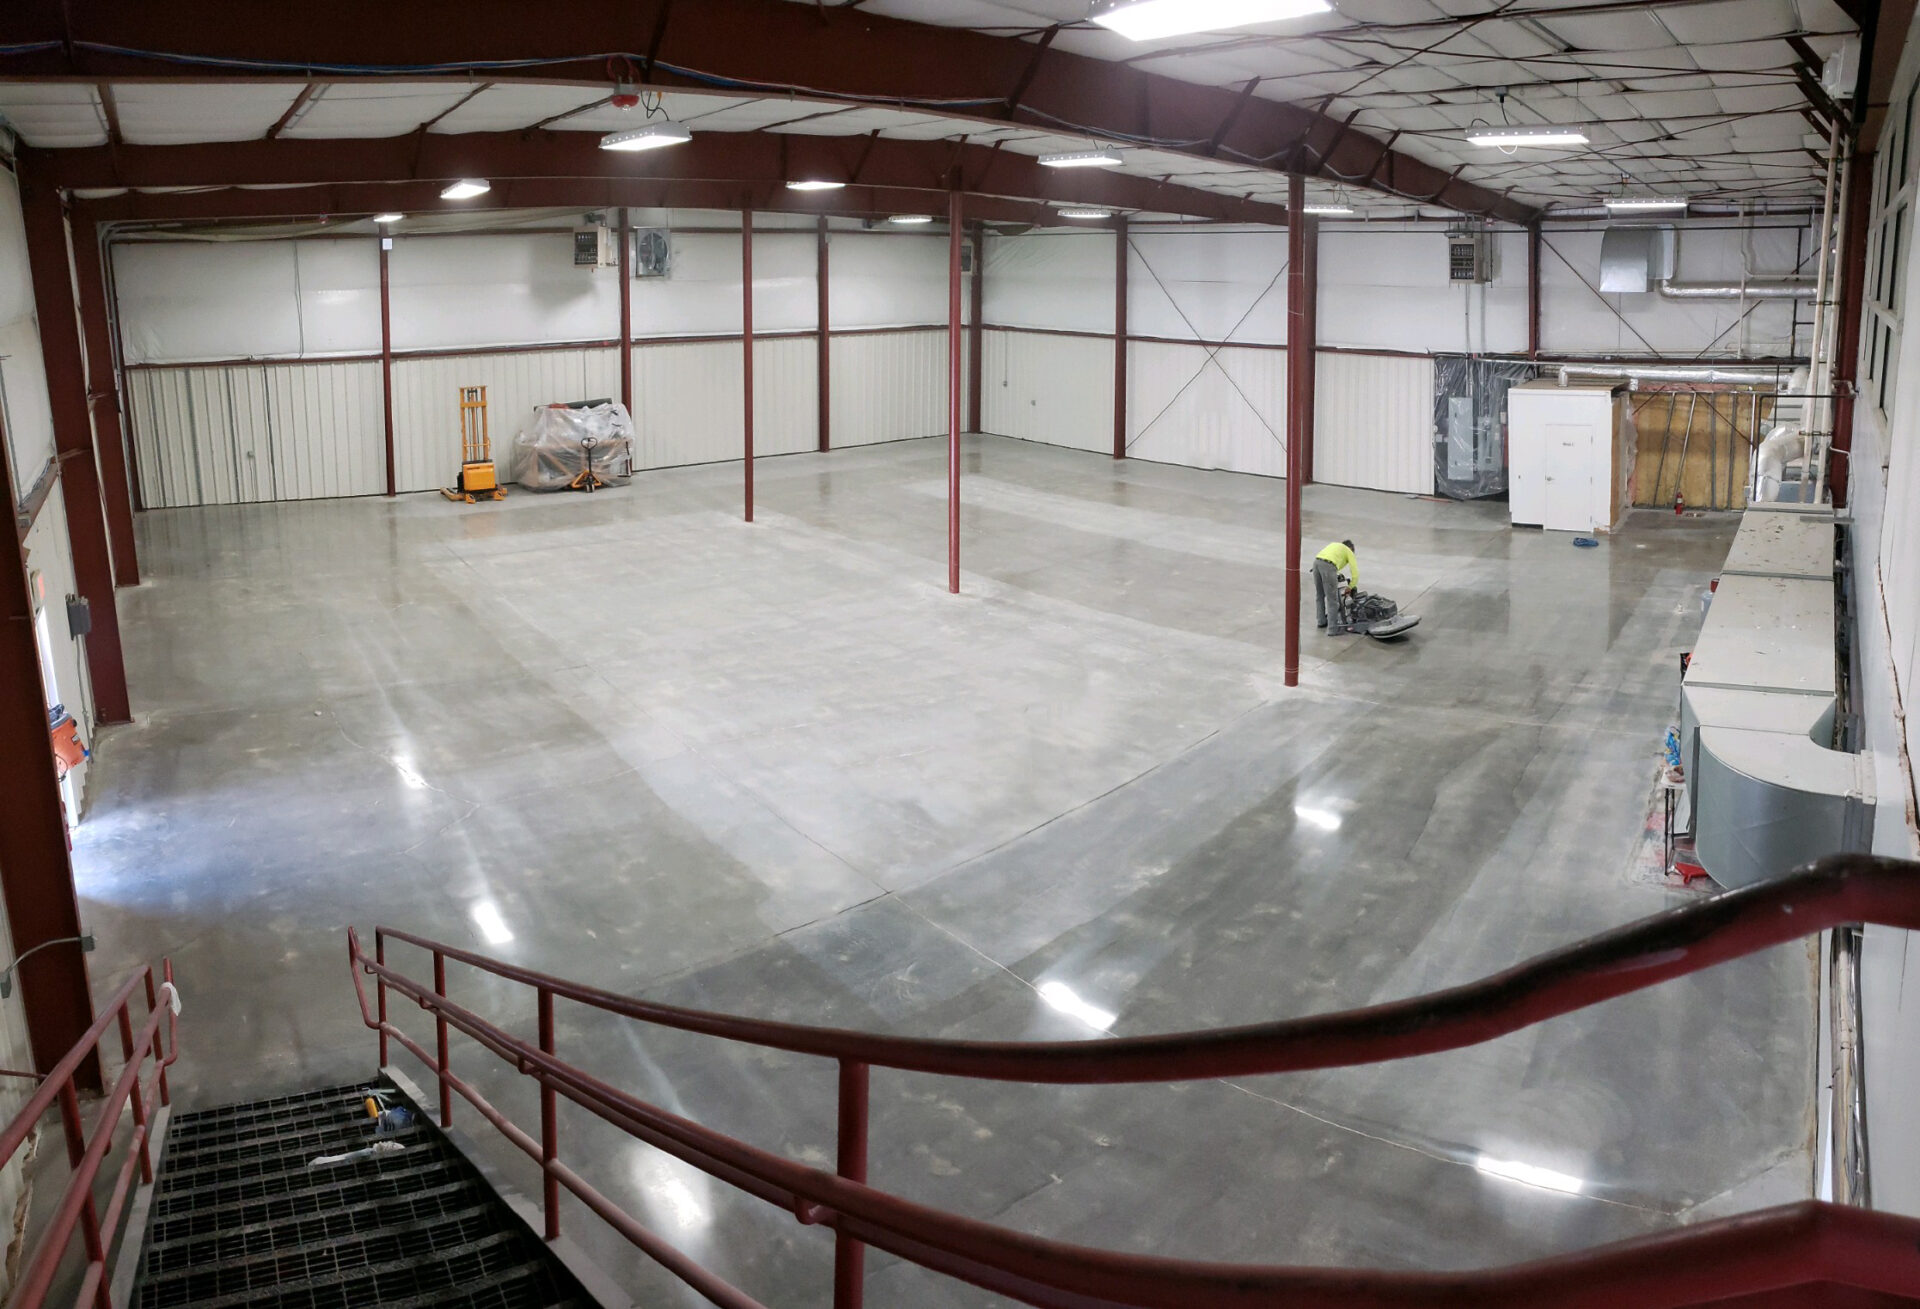 Storage units in Manchester, VT. The entire slab was ground, honed, densified, and polished to 400 grit finish. The owner asked for the aisles to be shiny and more reflective. The aisles between the individual storage units were guarded and burnished to 800 grit